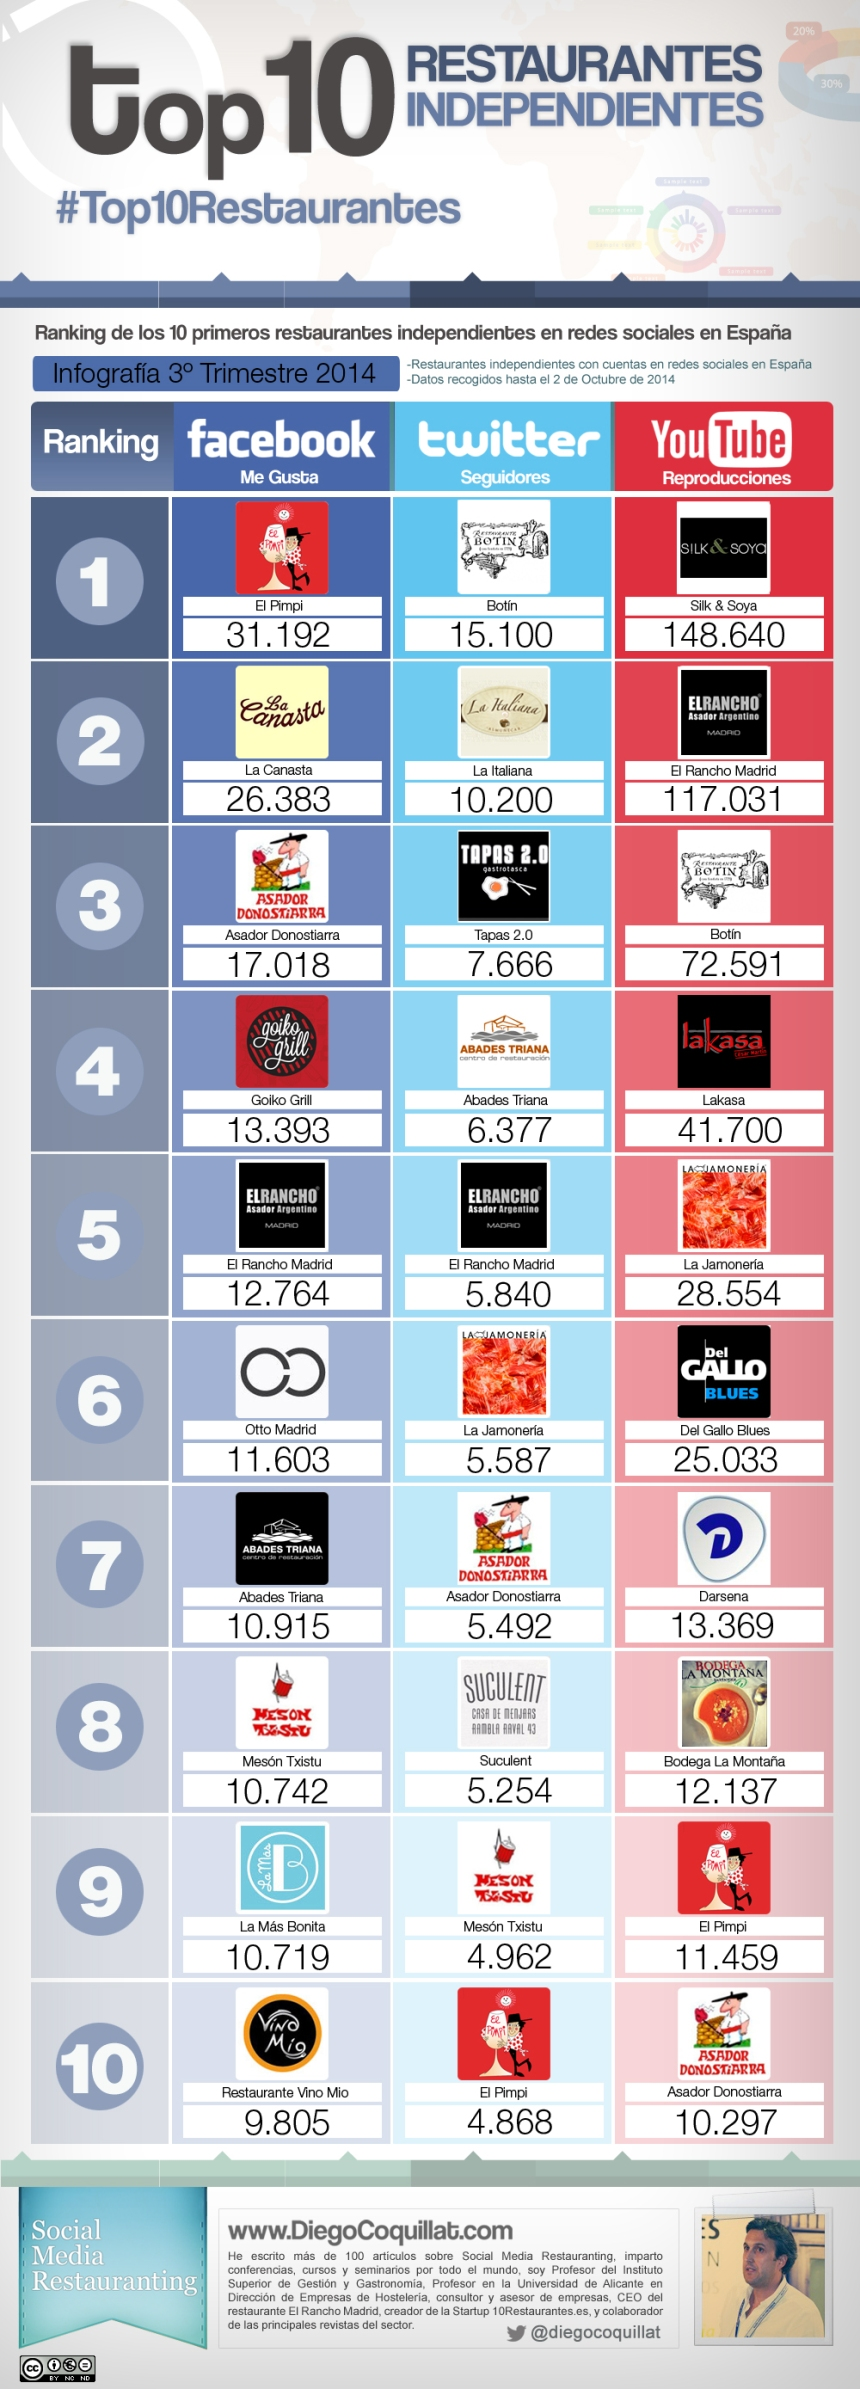 Top 10 restaurantes independientes en redes sociales España 2013 (3T)